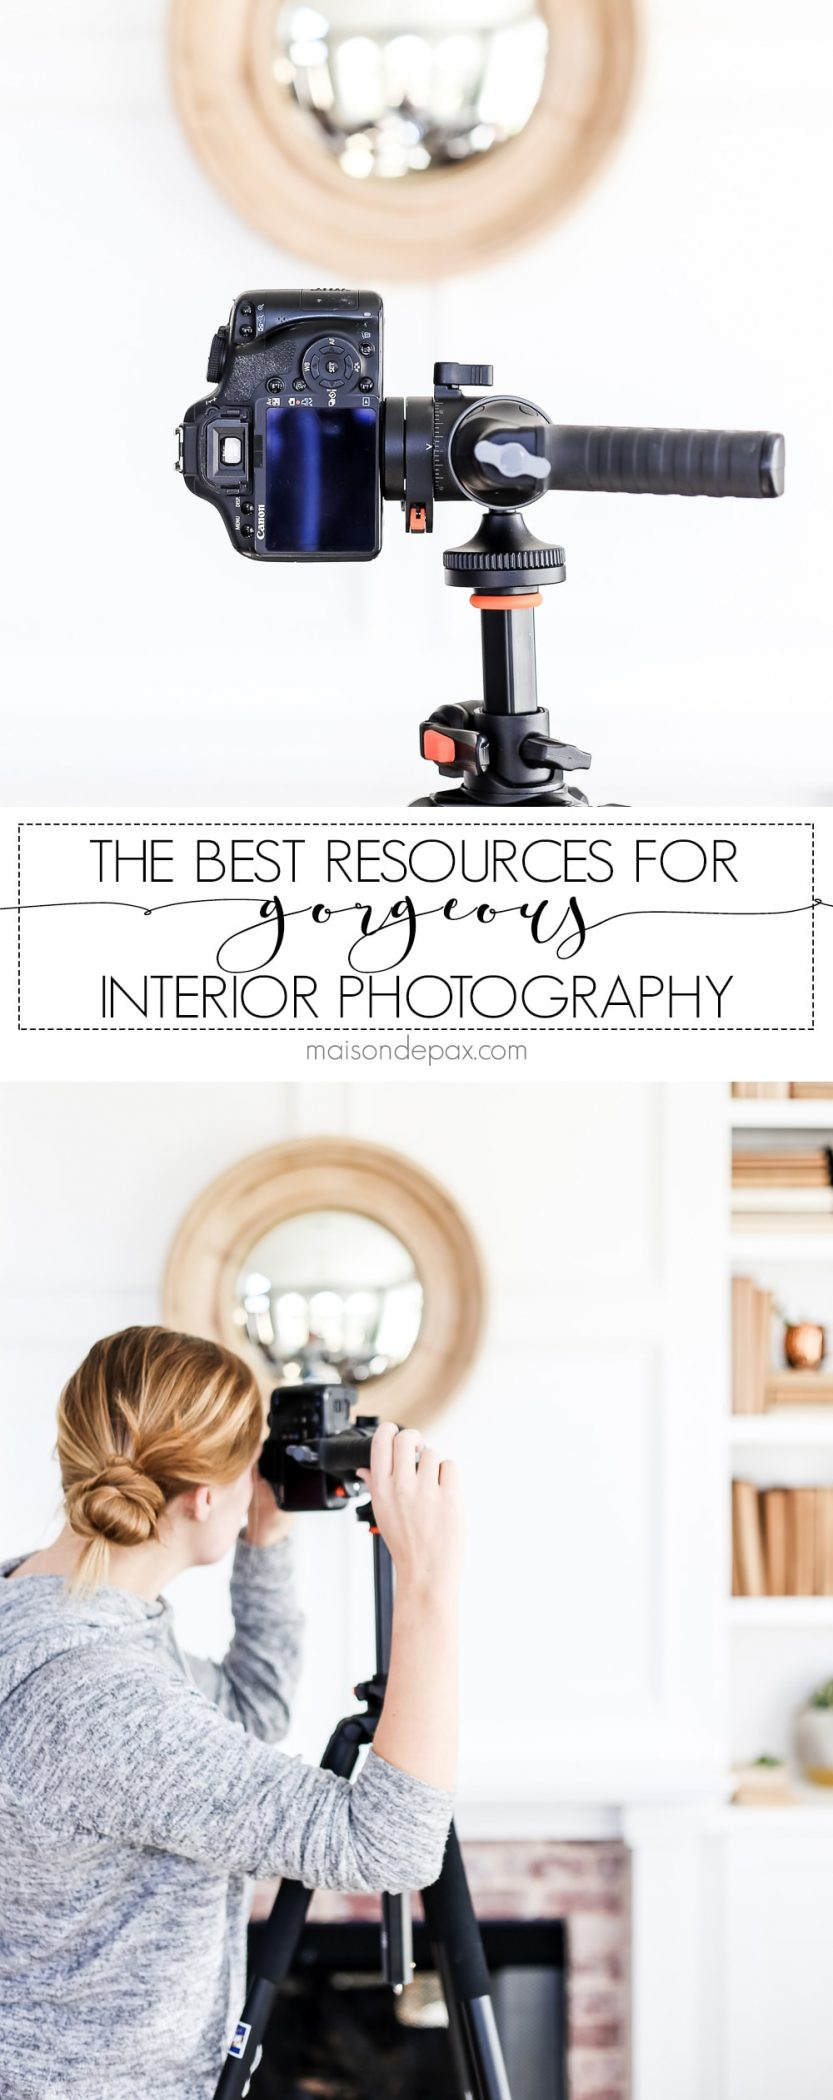 Are you a blogger, interior designer, real estate agent, homeowner, or small business owner looking to take beautiful interior photos?  These photography resources will help you take the best home photos you can. #photographytips #interiorphotography #interiorphotos #phototips #photography #interiordesign #bestinteriorphotos #cameraequipment